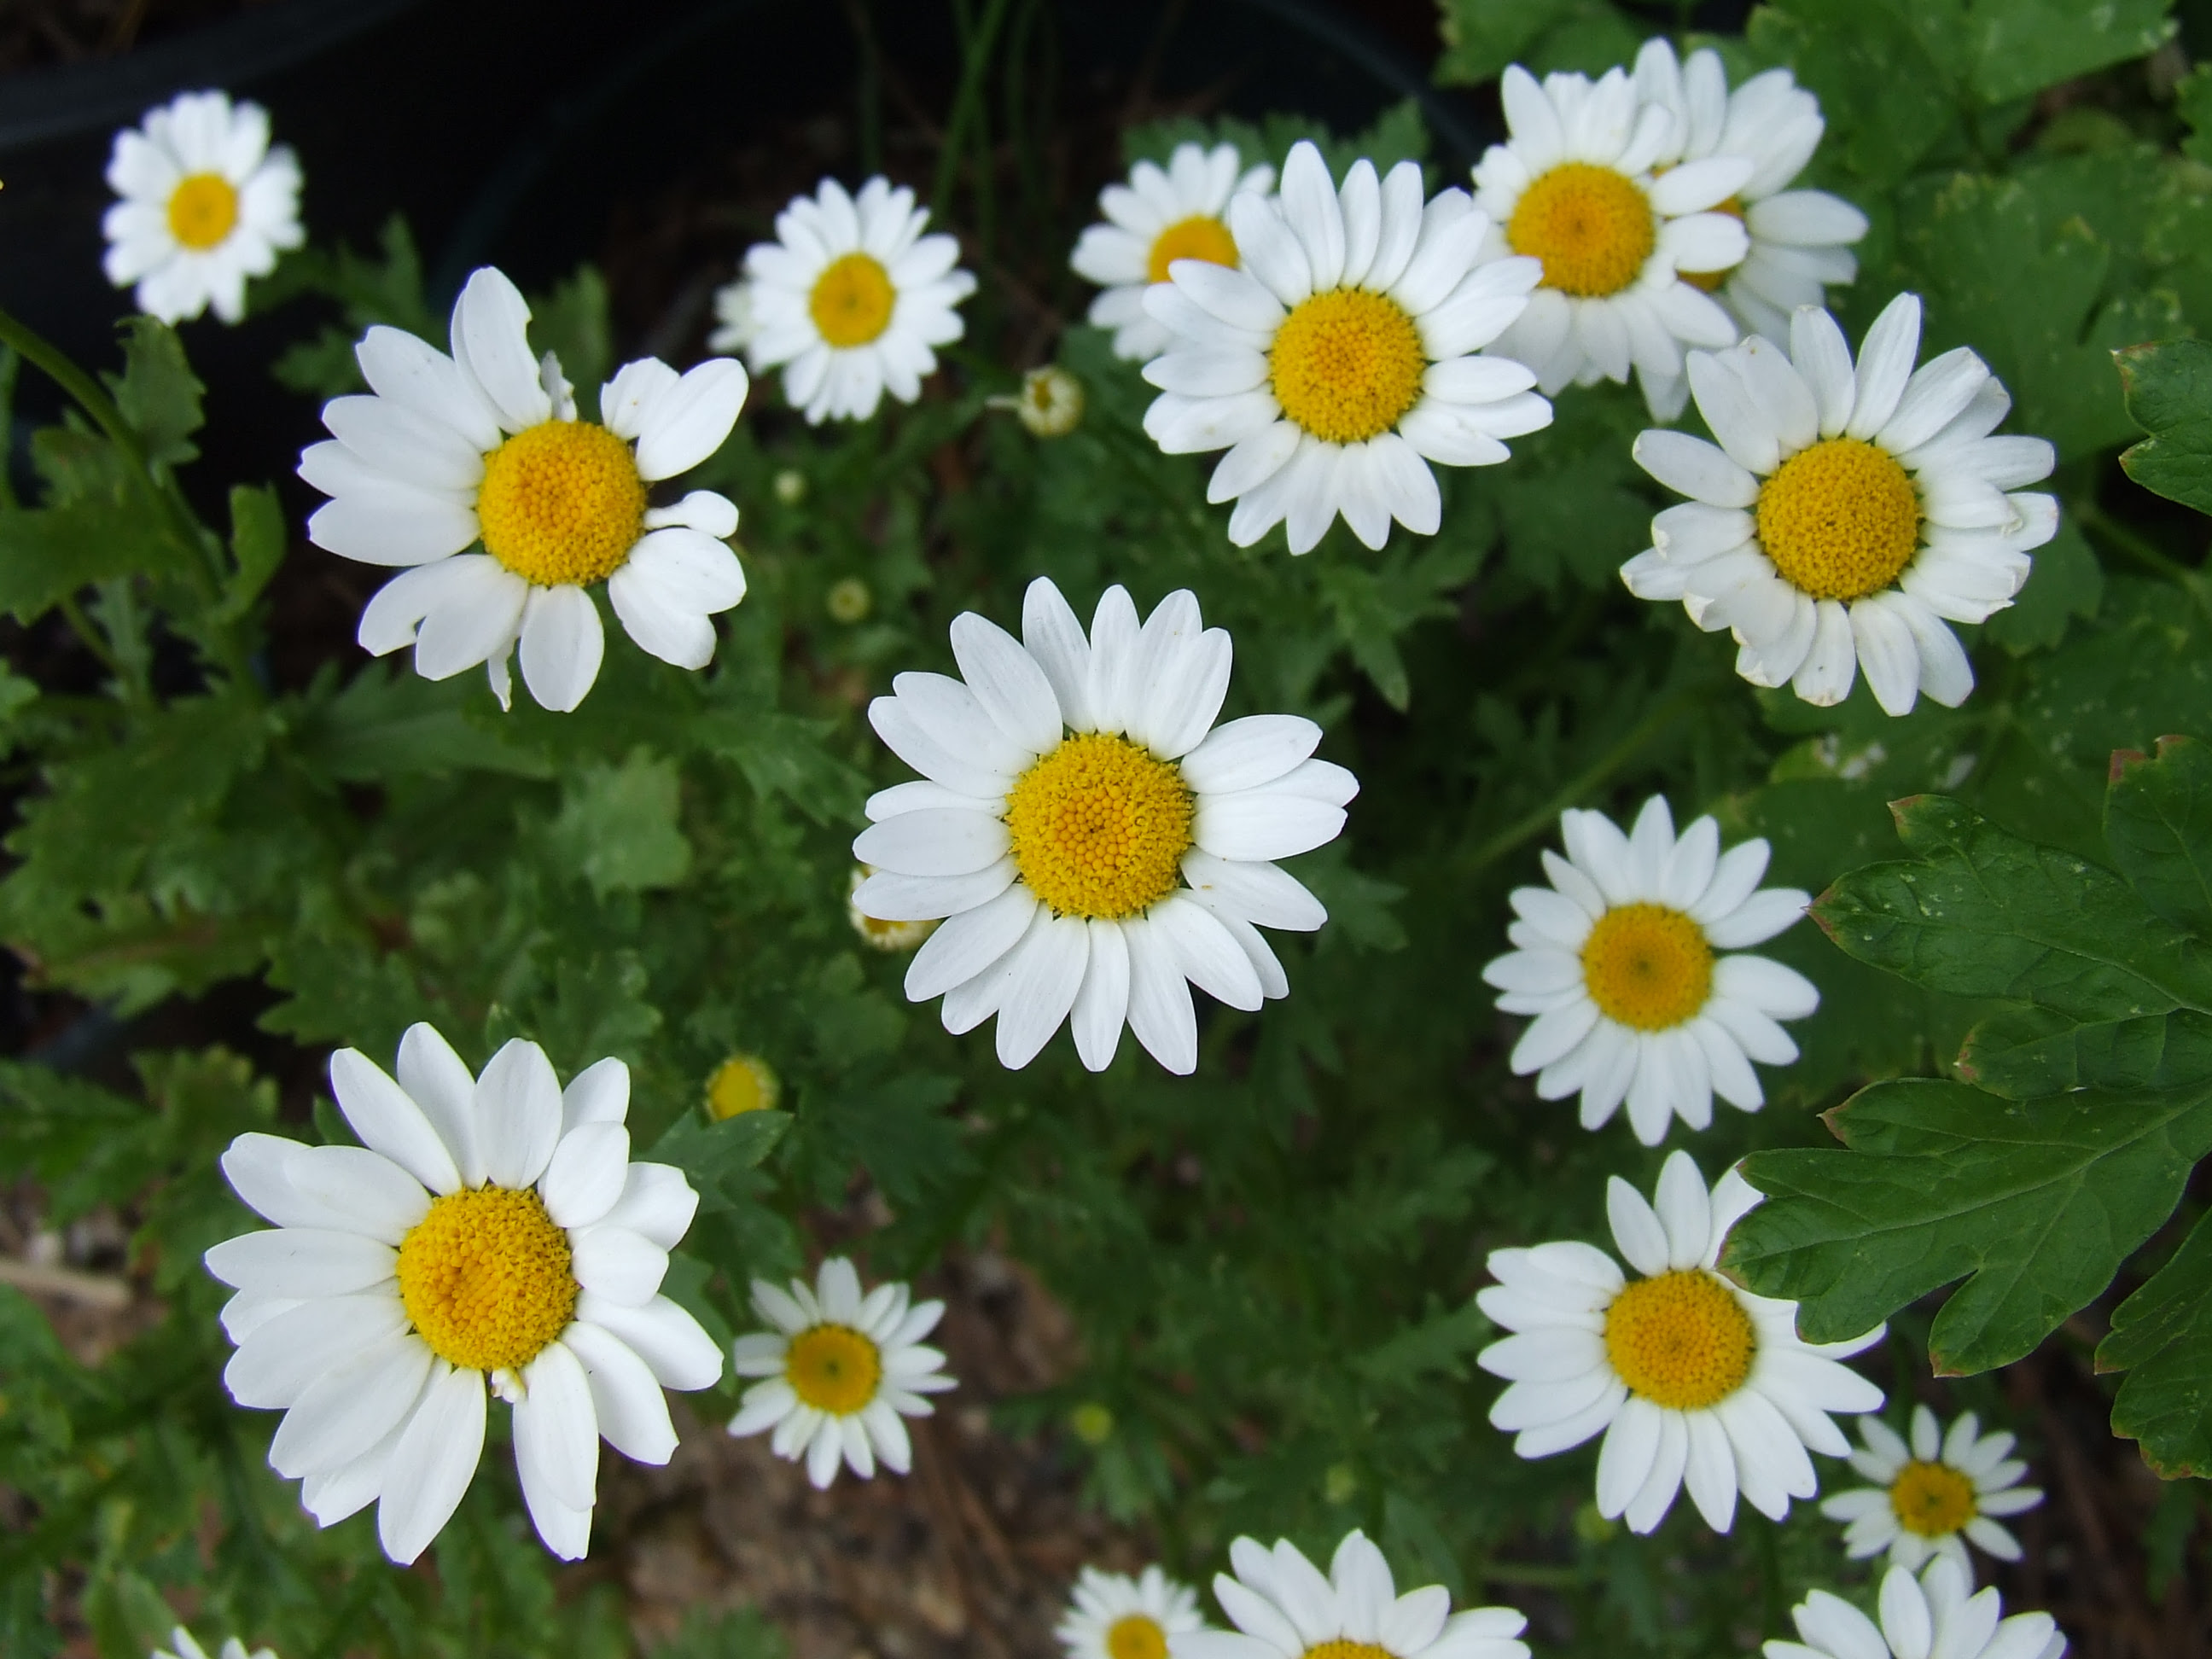 Beautiful flowers flowers daisies pictures daisy flowers izmirmasajfo Image collections